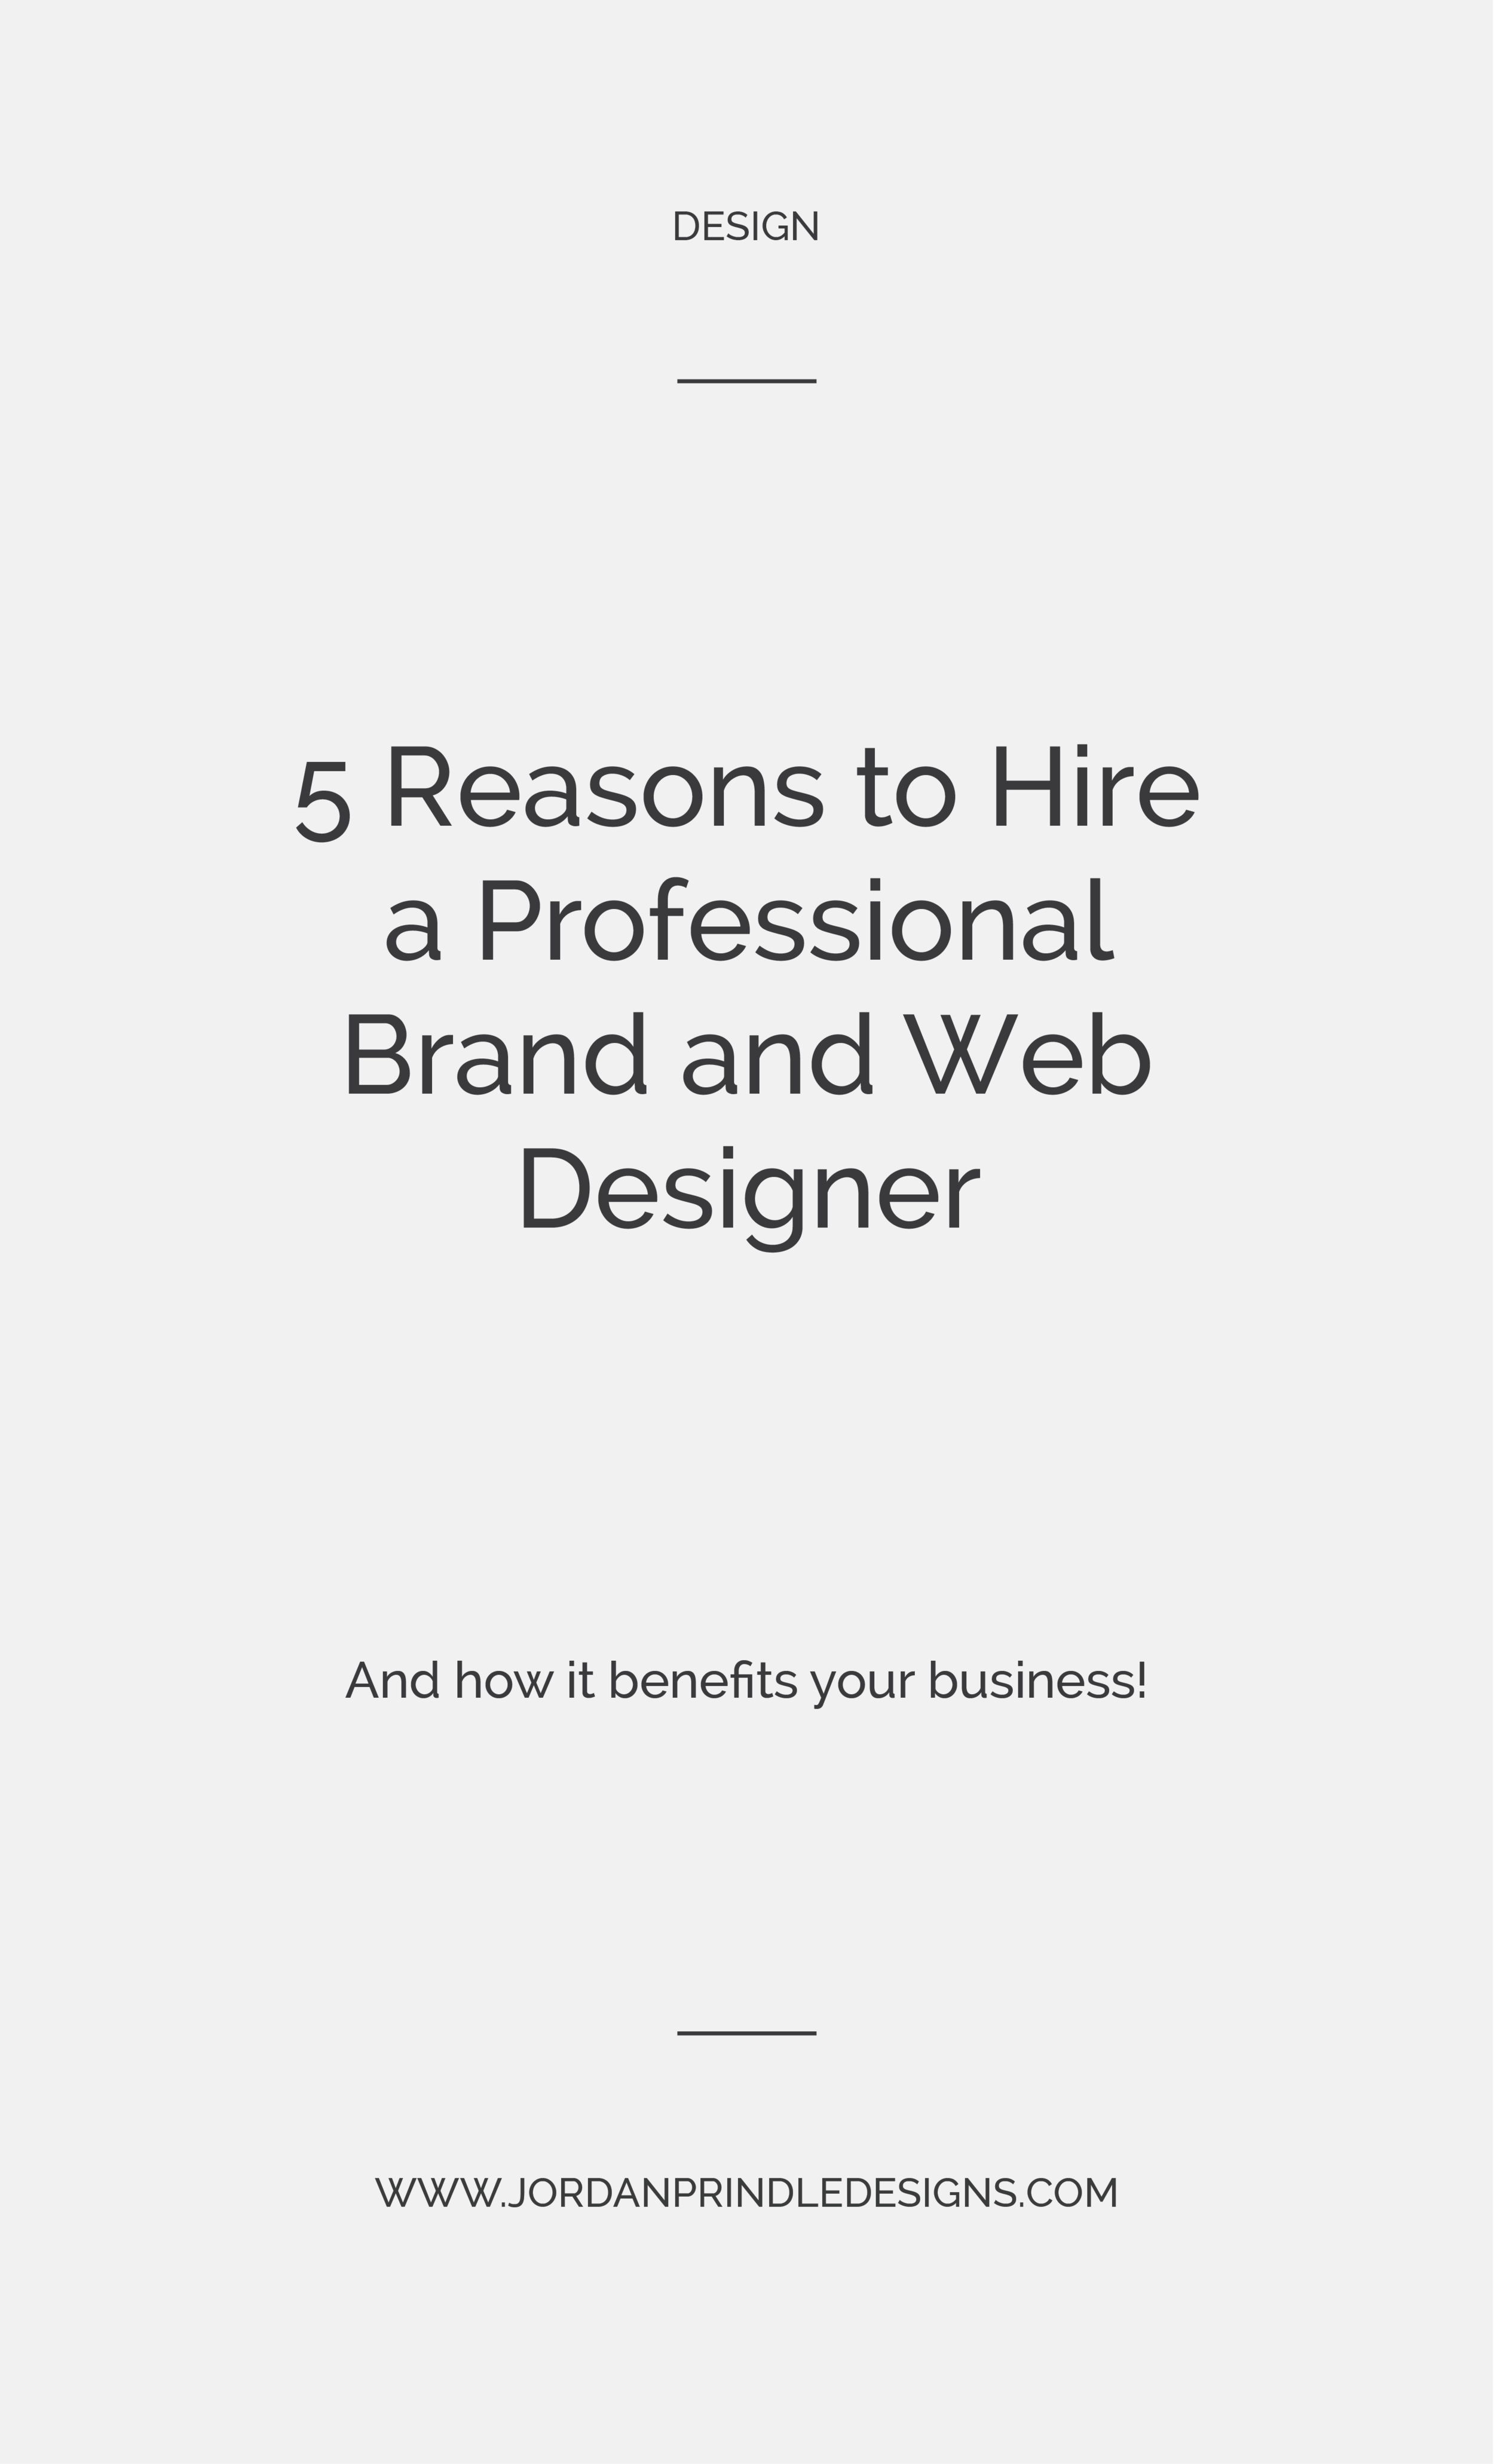 5 Reasons to Hire a Professional Designer   Are you tired of logo templates and attracting clients that aren't exactly ideal? Well, it may be due to bad design! Keep reading at www.jordanprindledesigns.com #graphicdesign #designtips #branddesigner